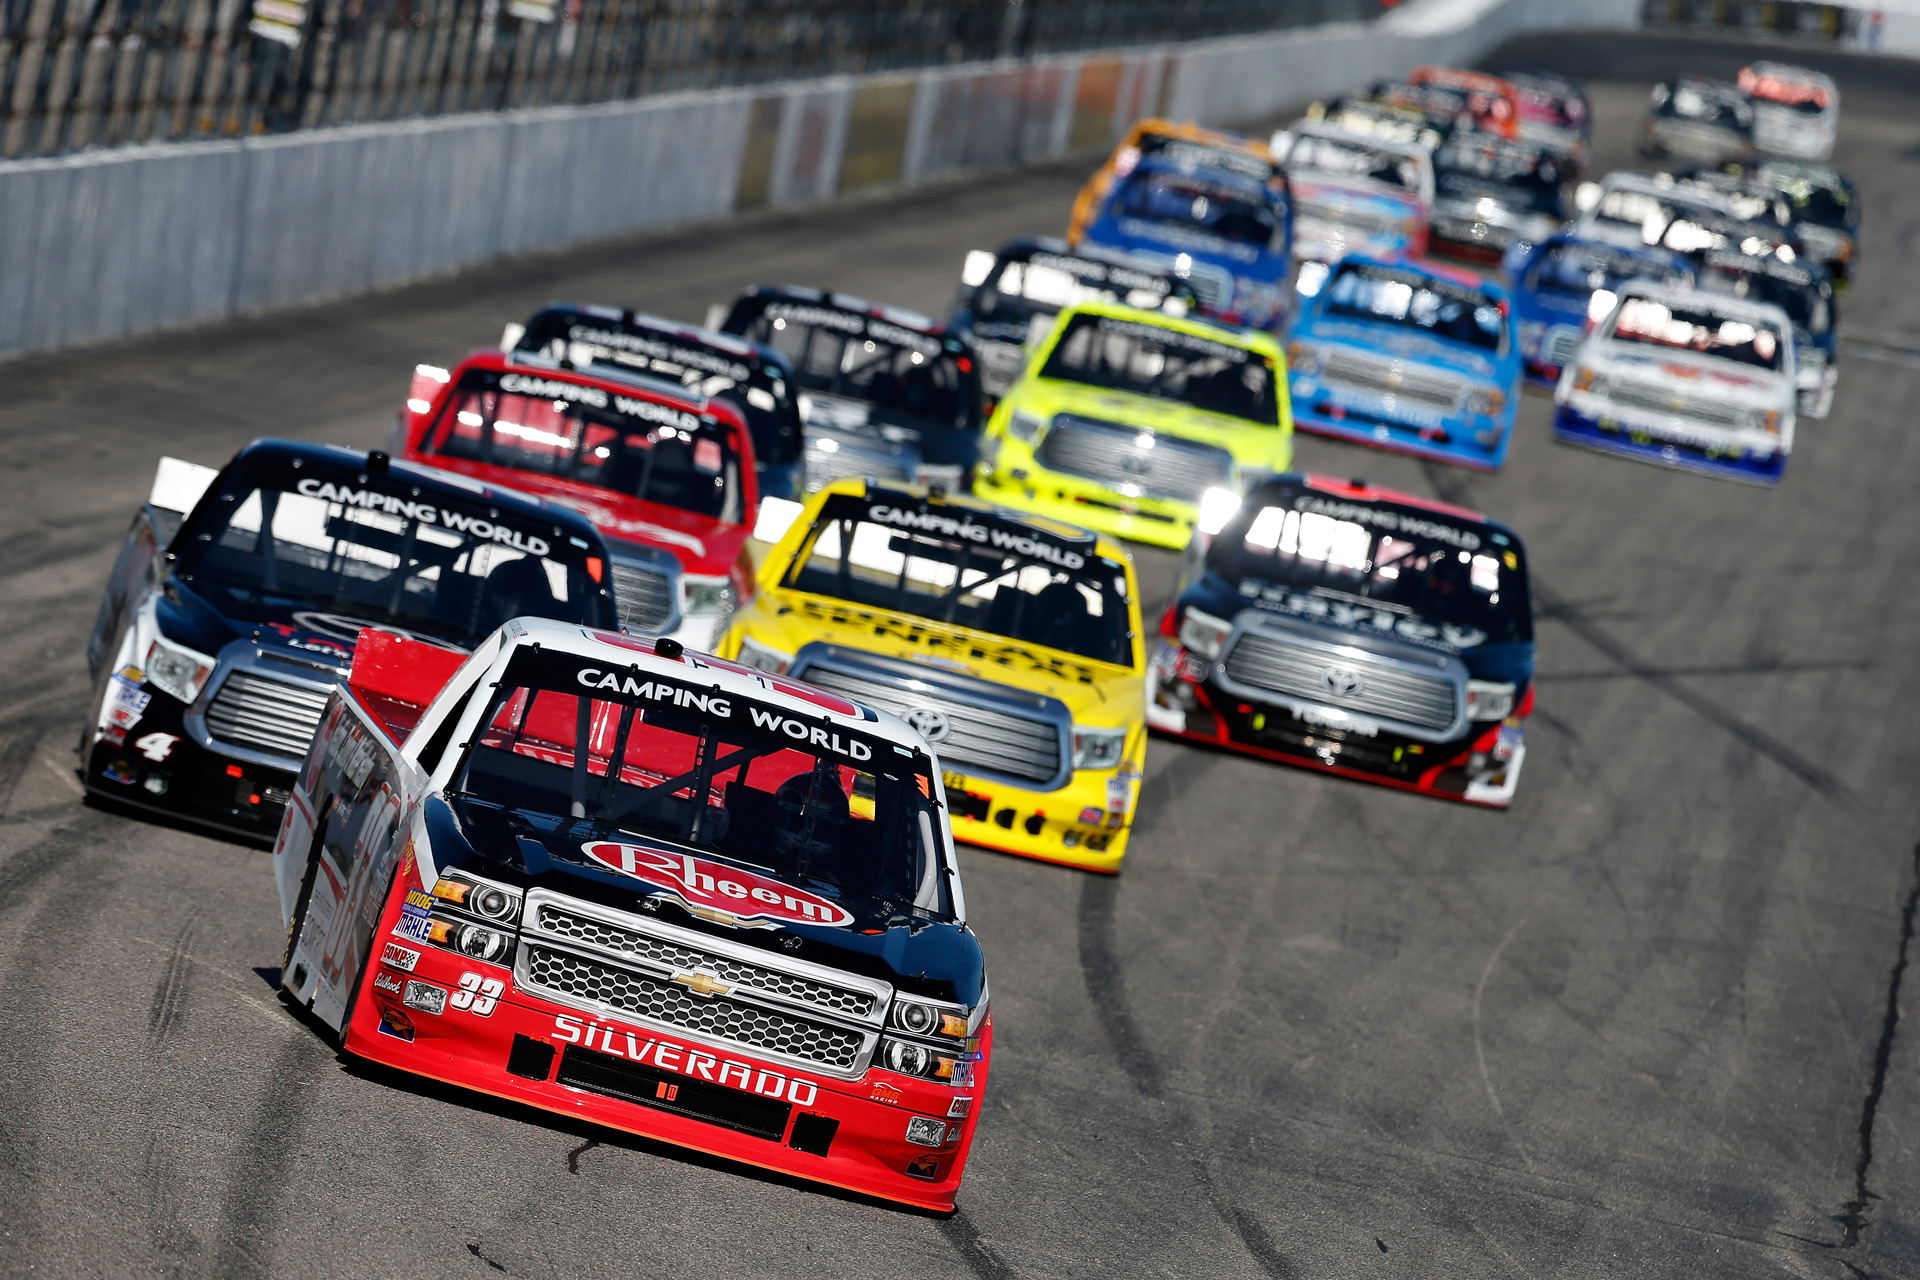 nascar engine spec program on schedule for trucks in may chris